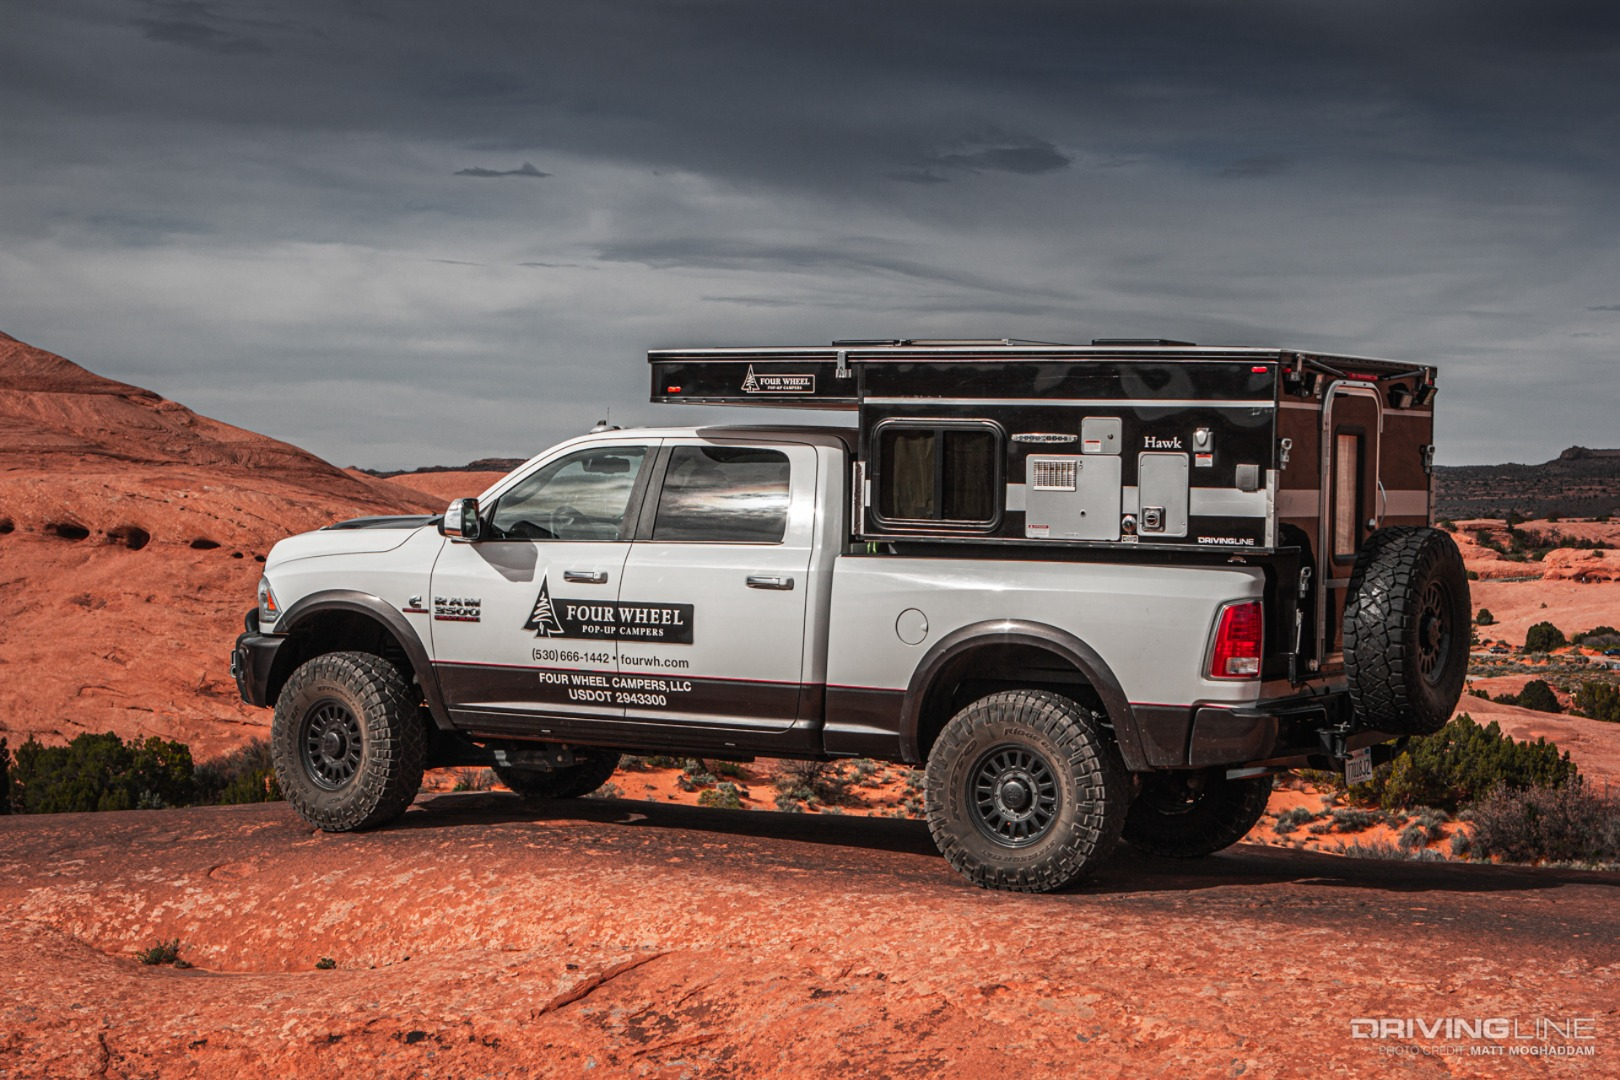 Four Wheel Campers: Serious Digs for Serious Overlanders